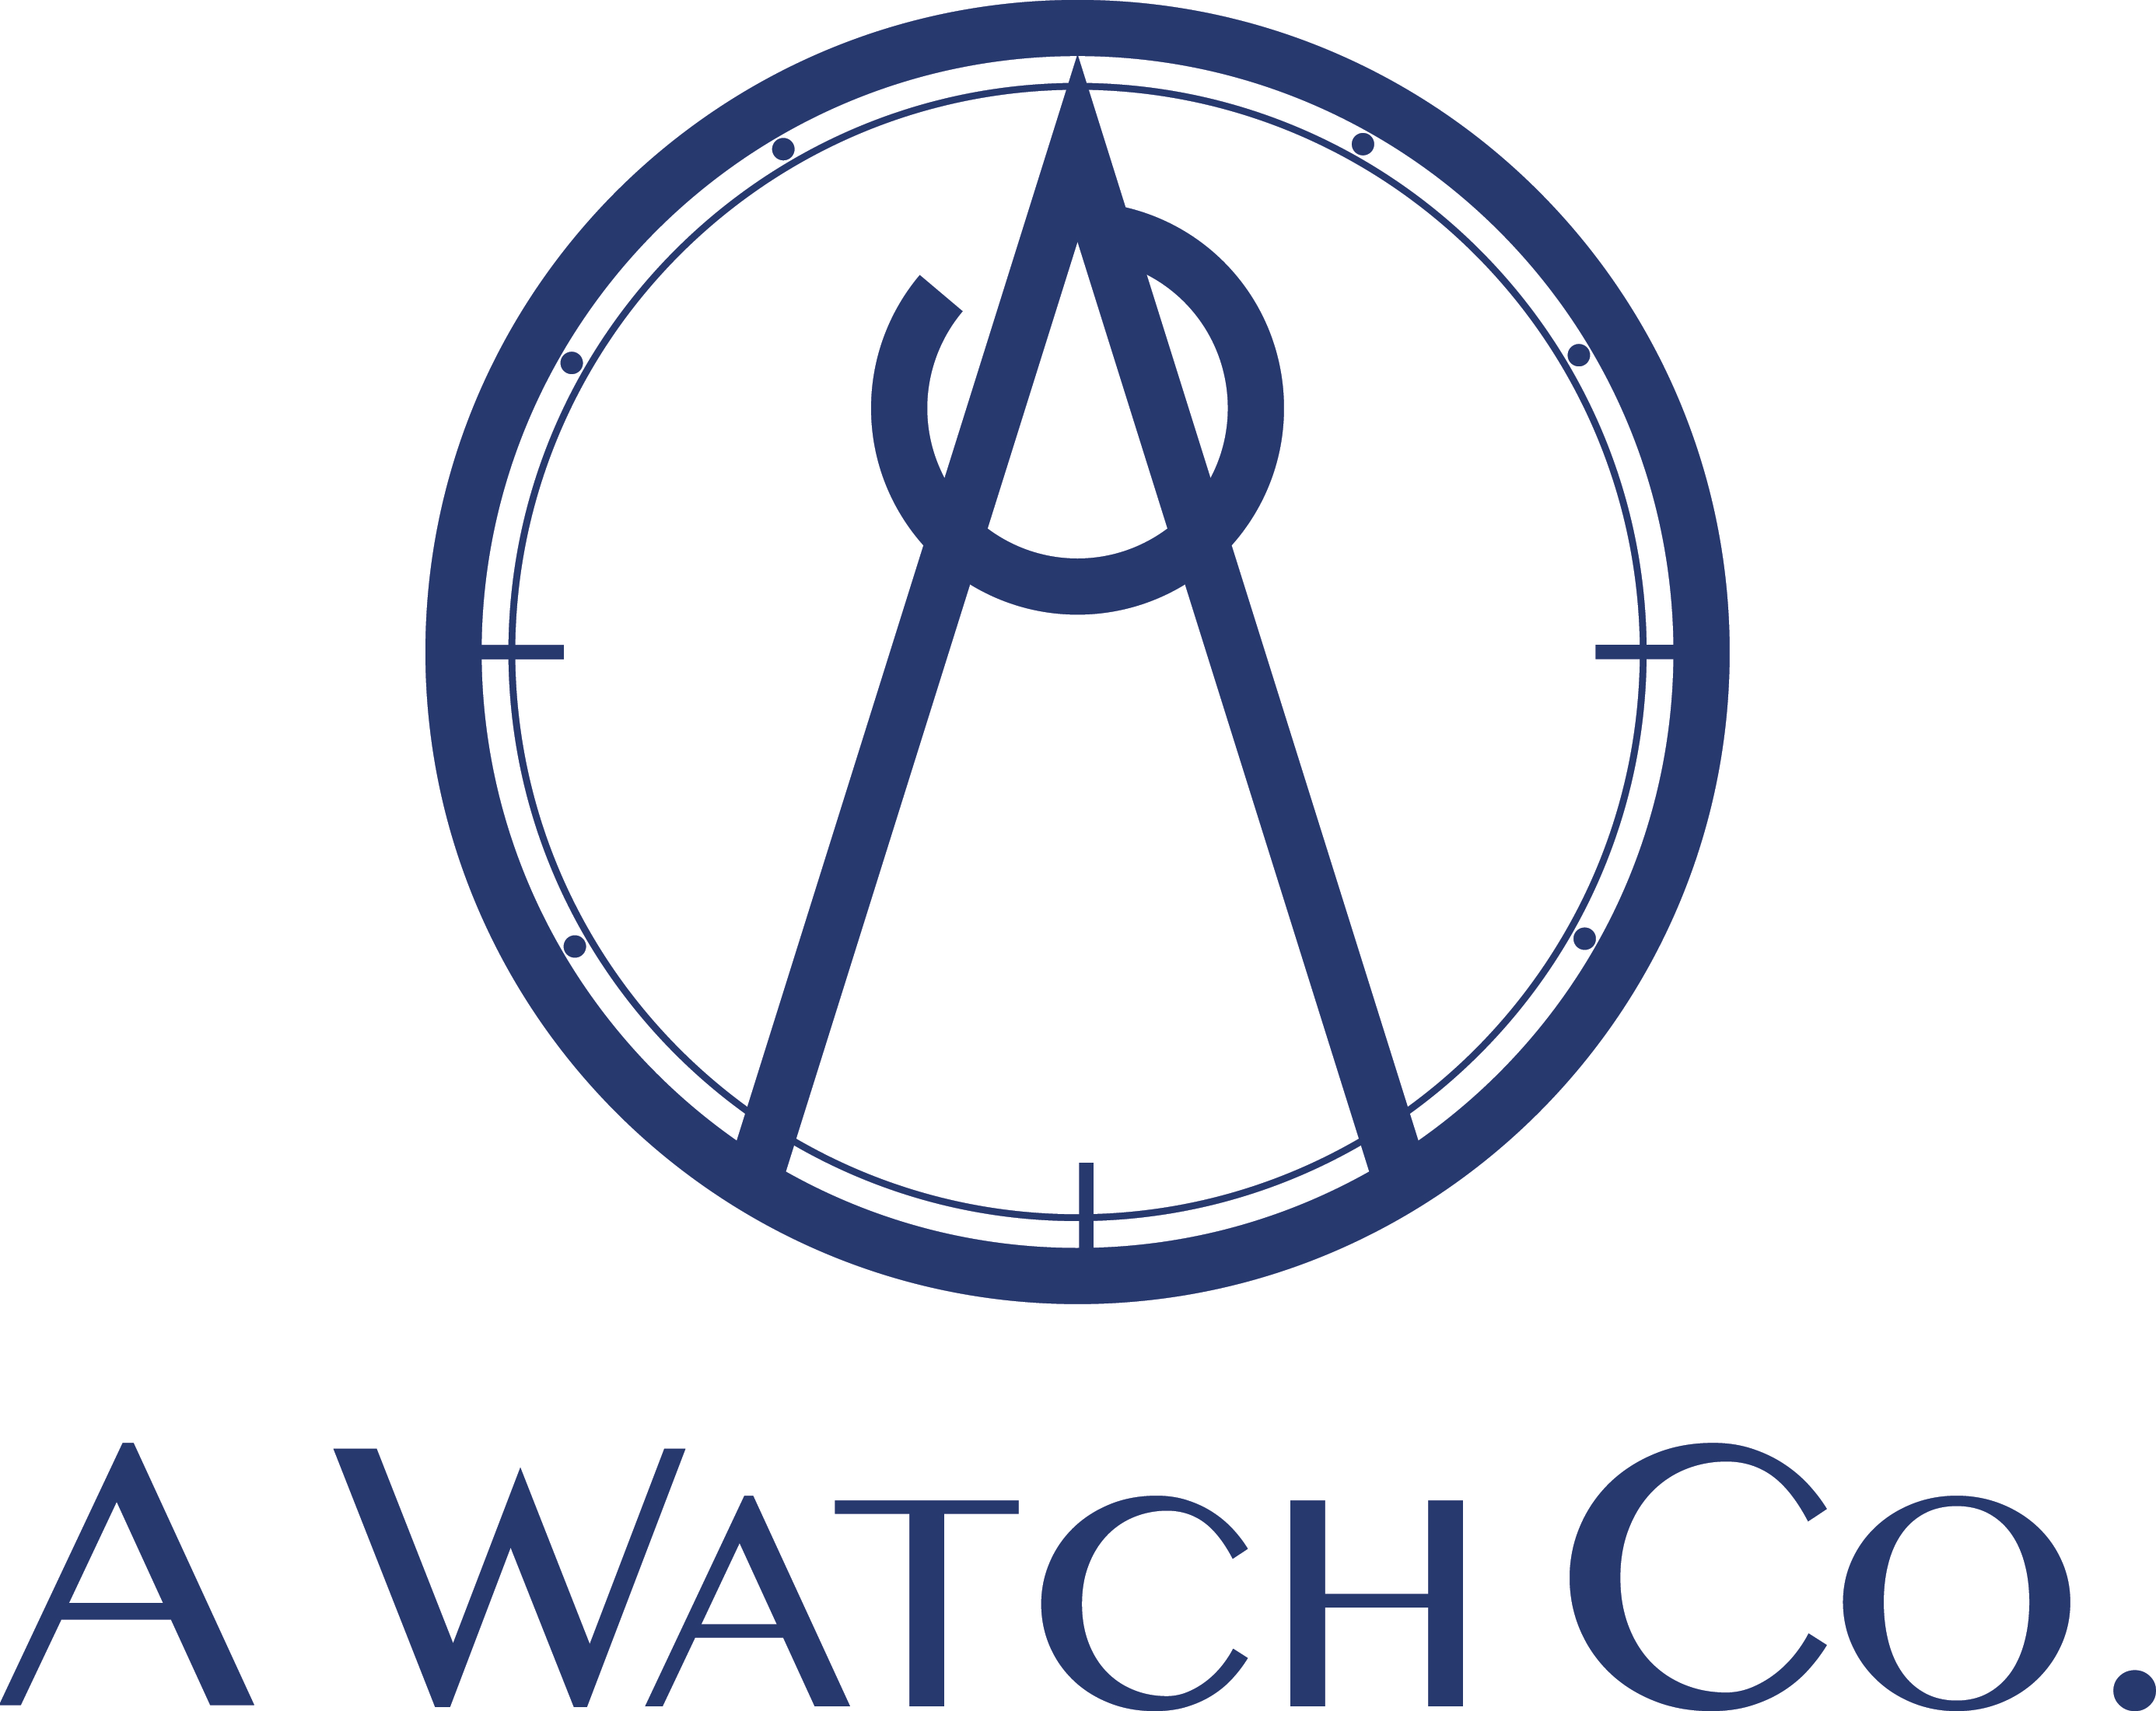 A Watch Company Limited